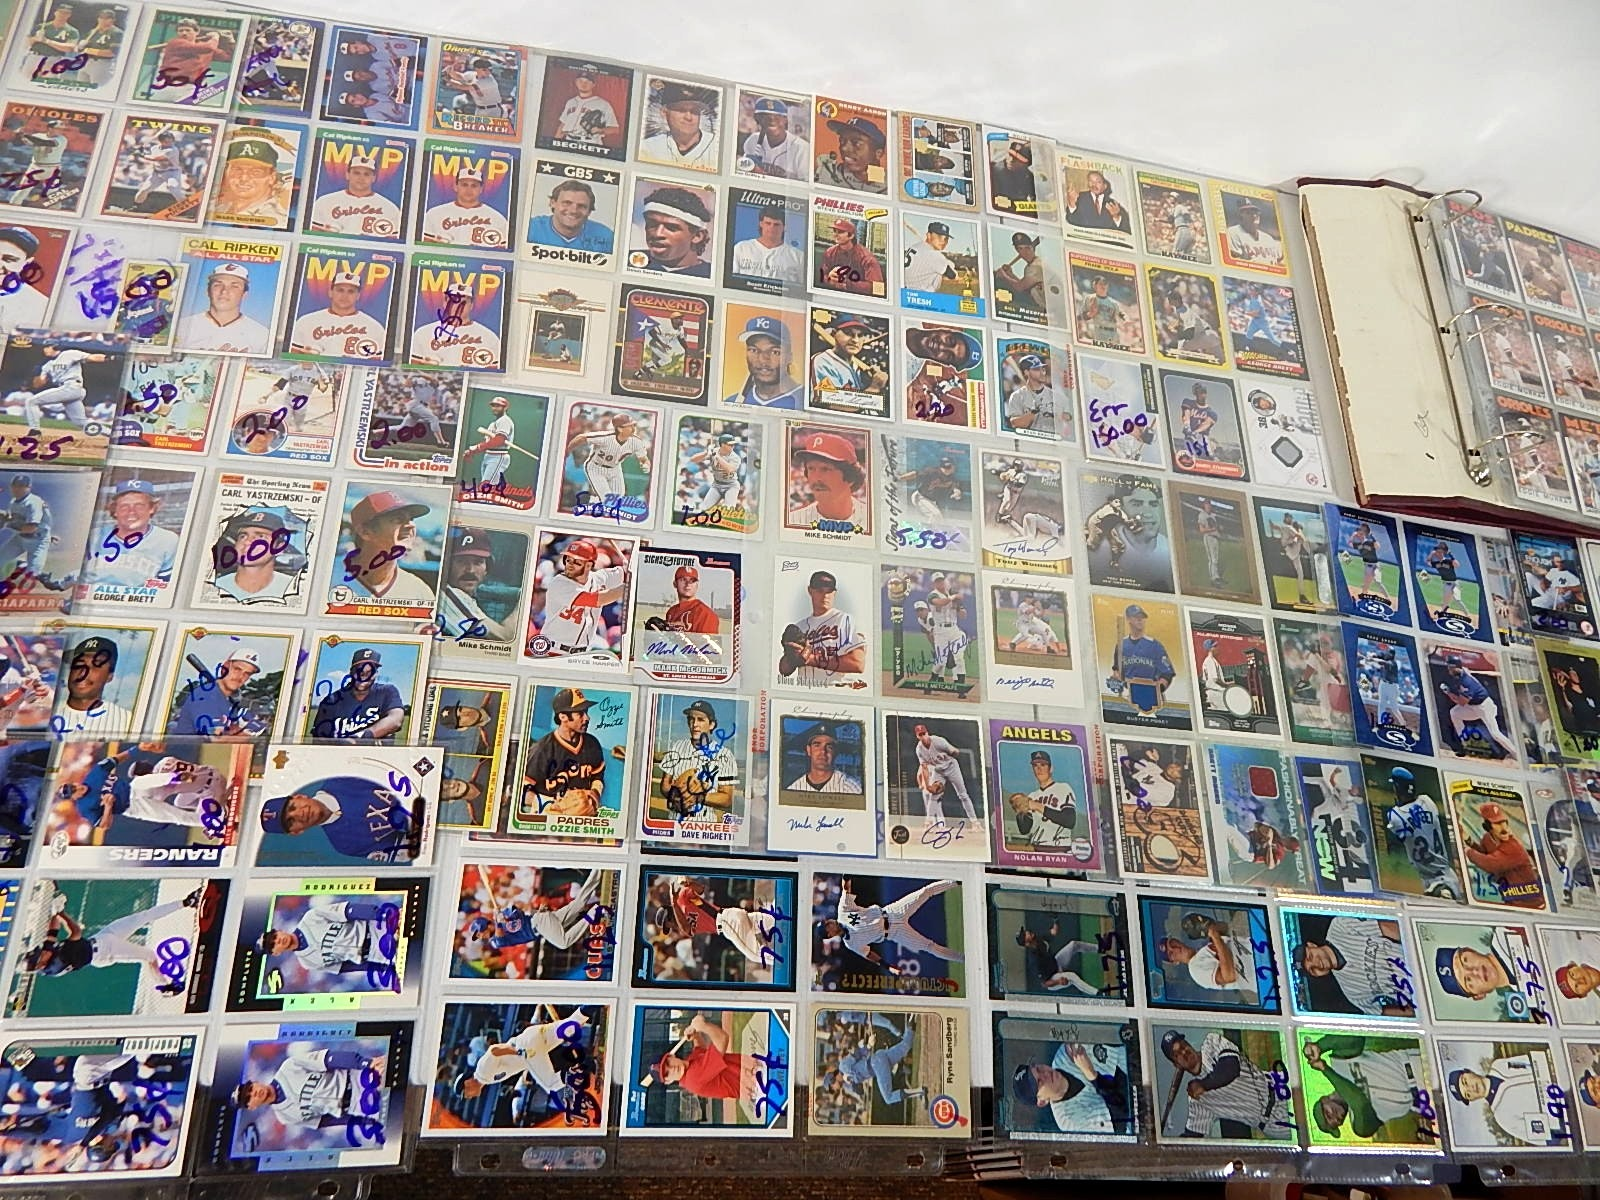 Baseball Star and Rookie Card Collection with Autographs, Game Used and More